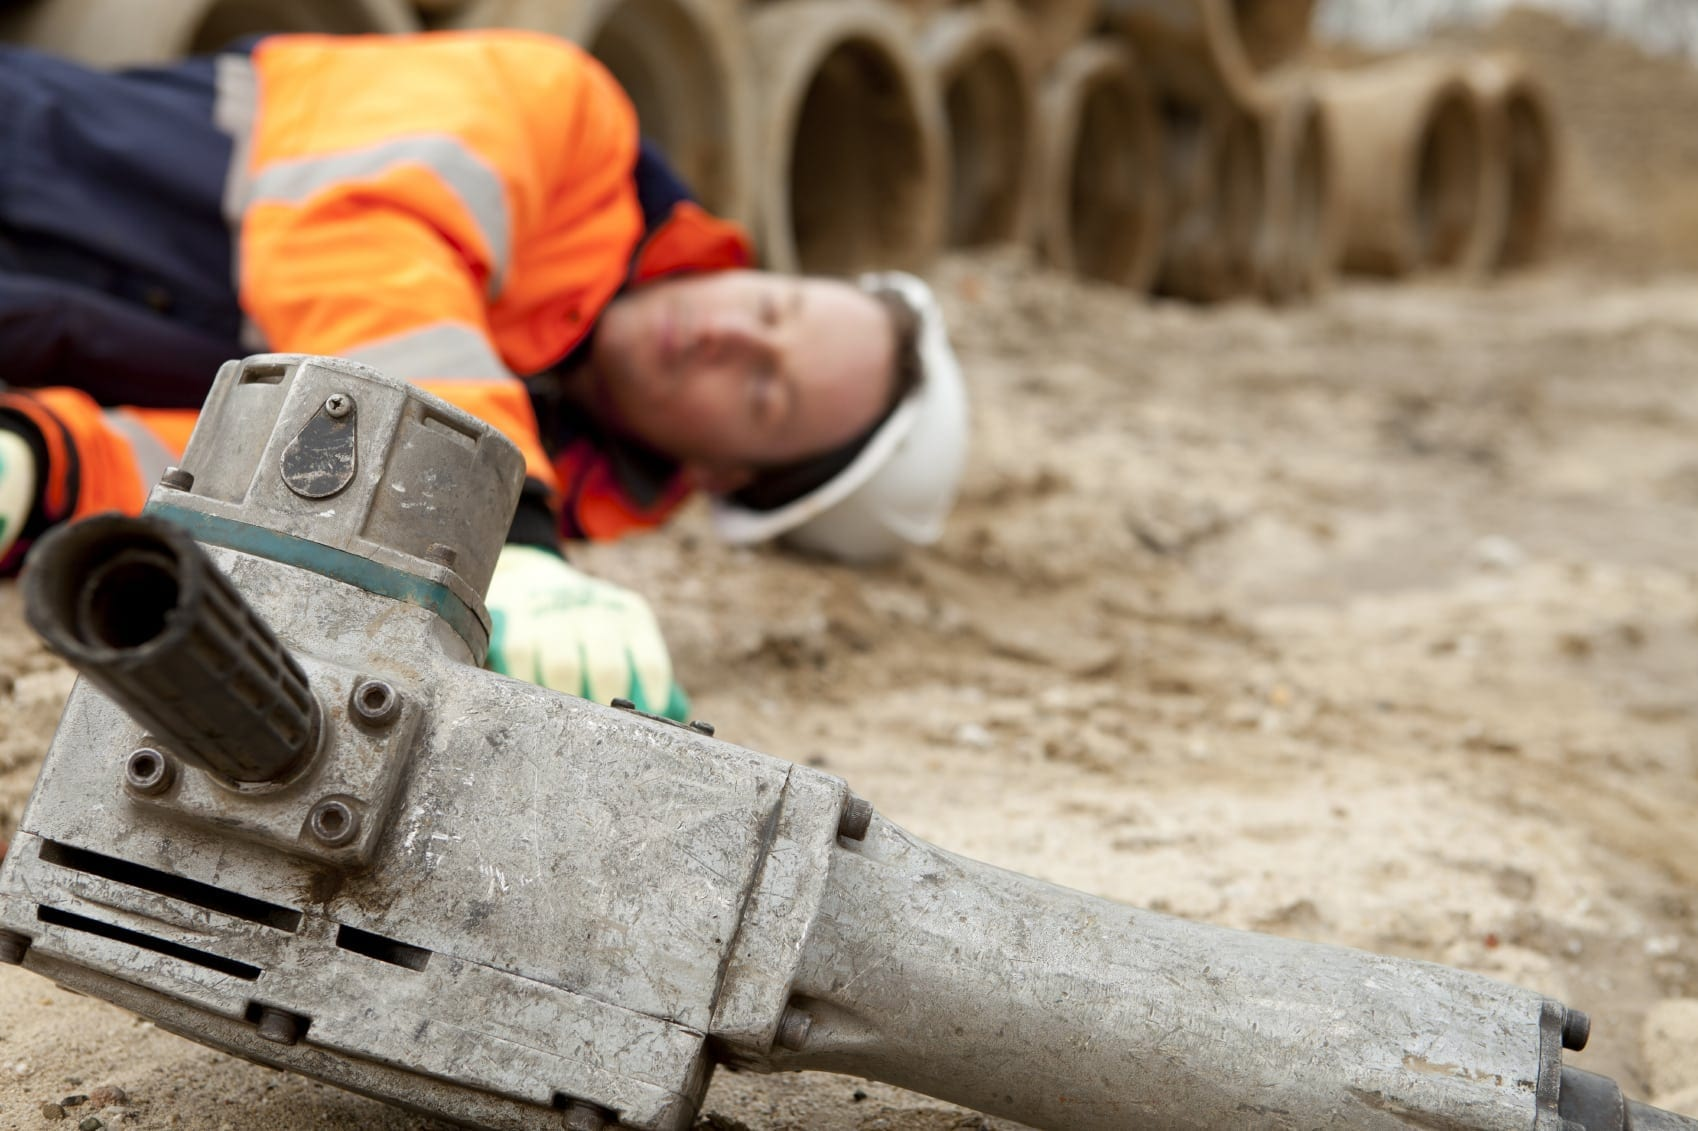 Indianapolis Injury Lawyers: Protect your Rights After a Workplace Injury